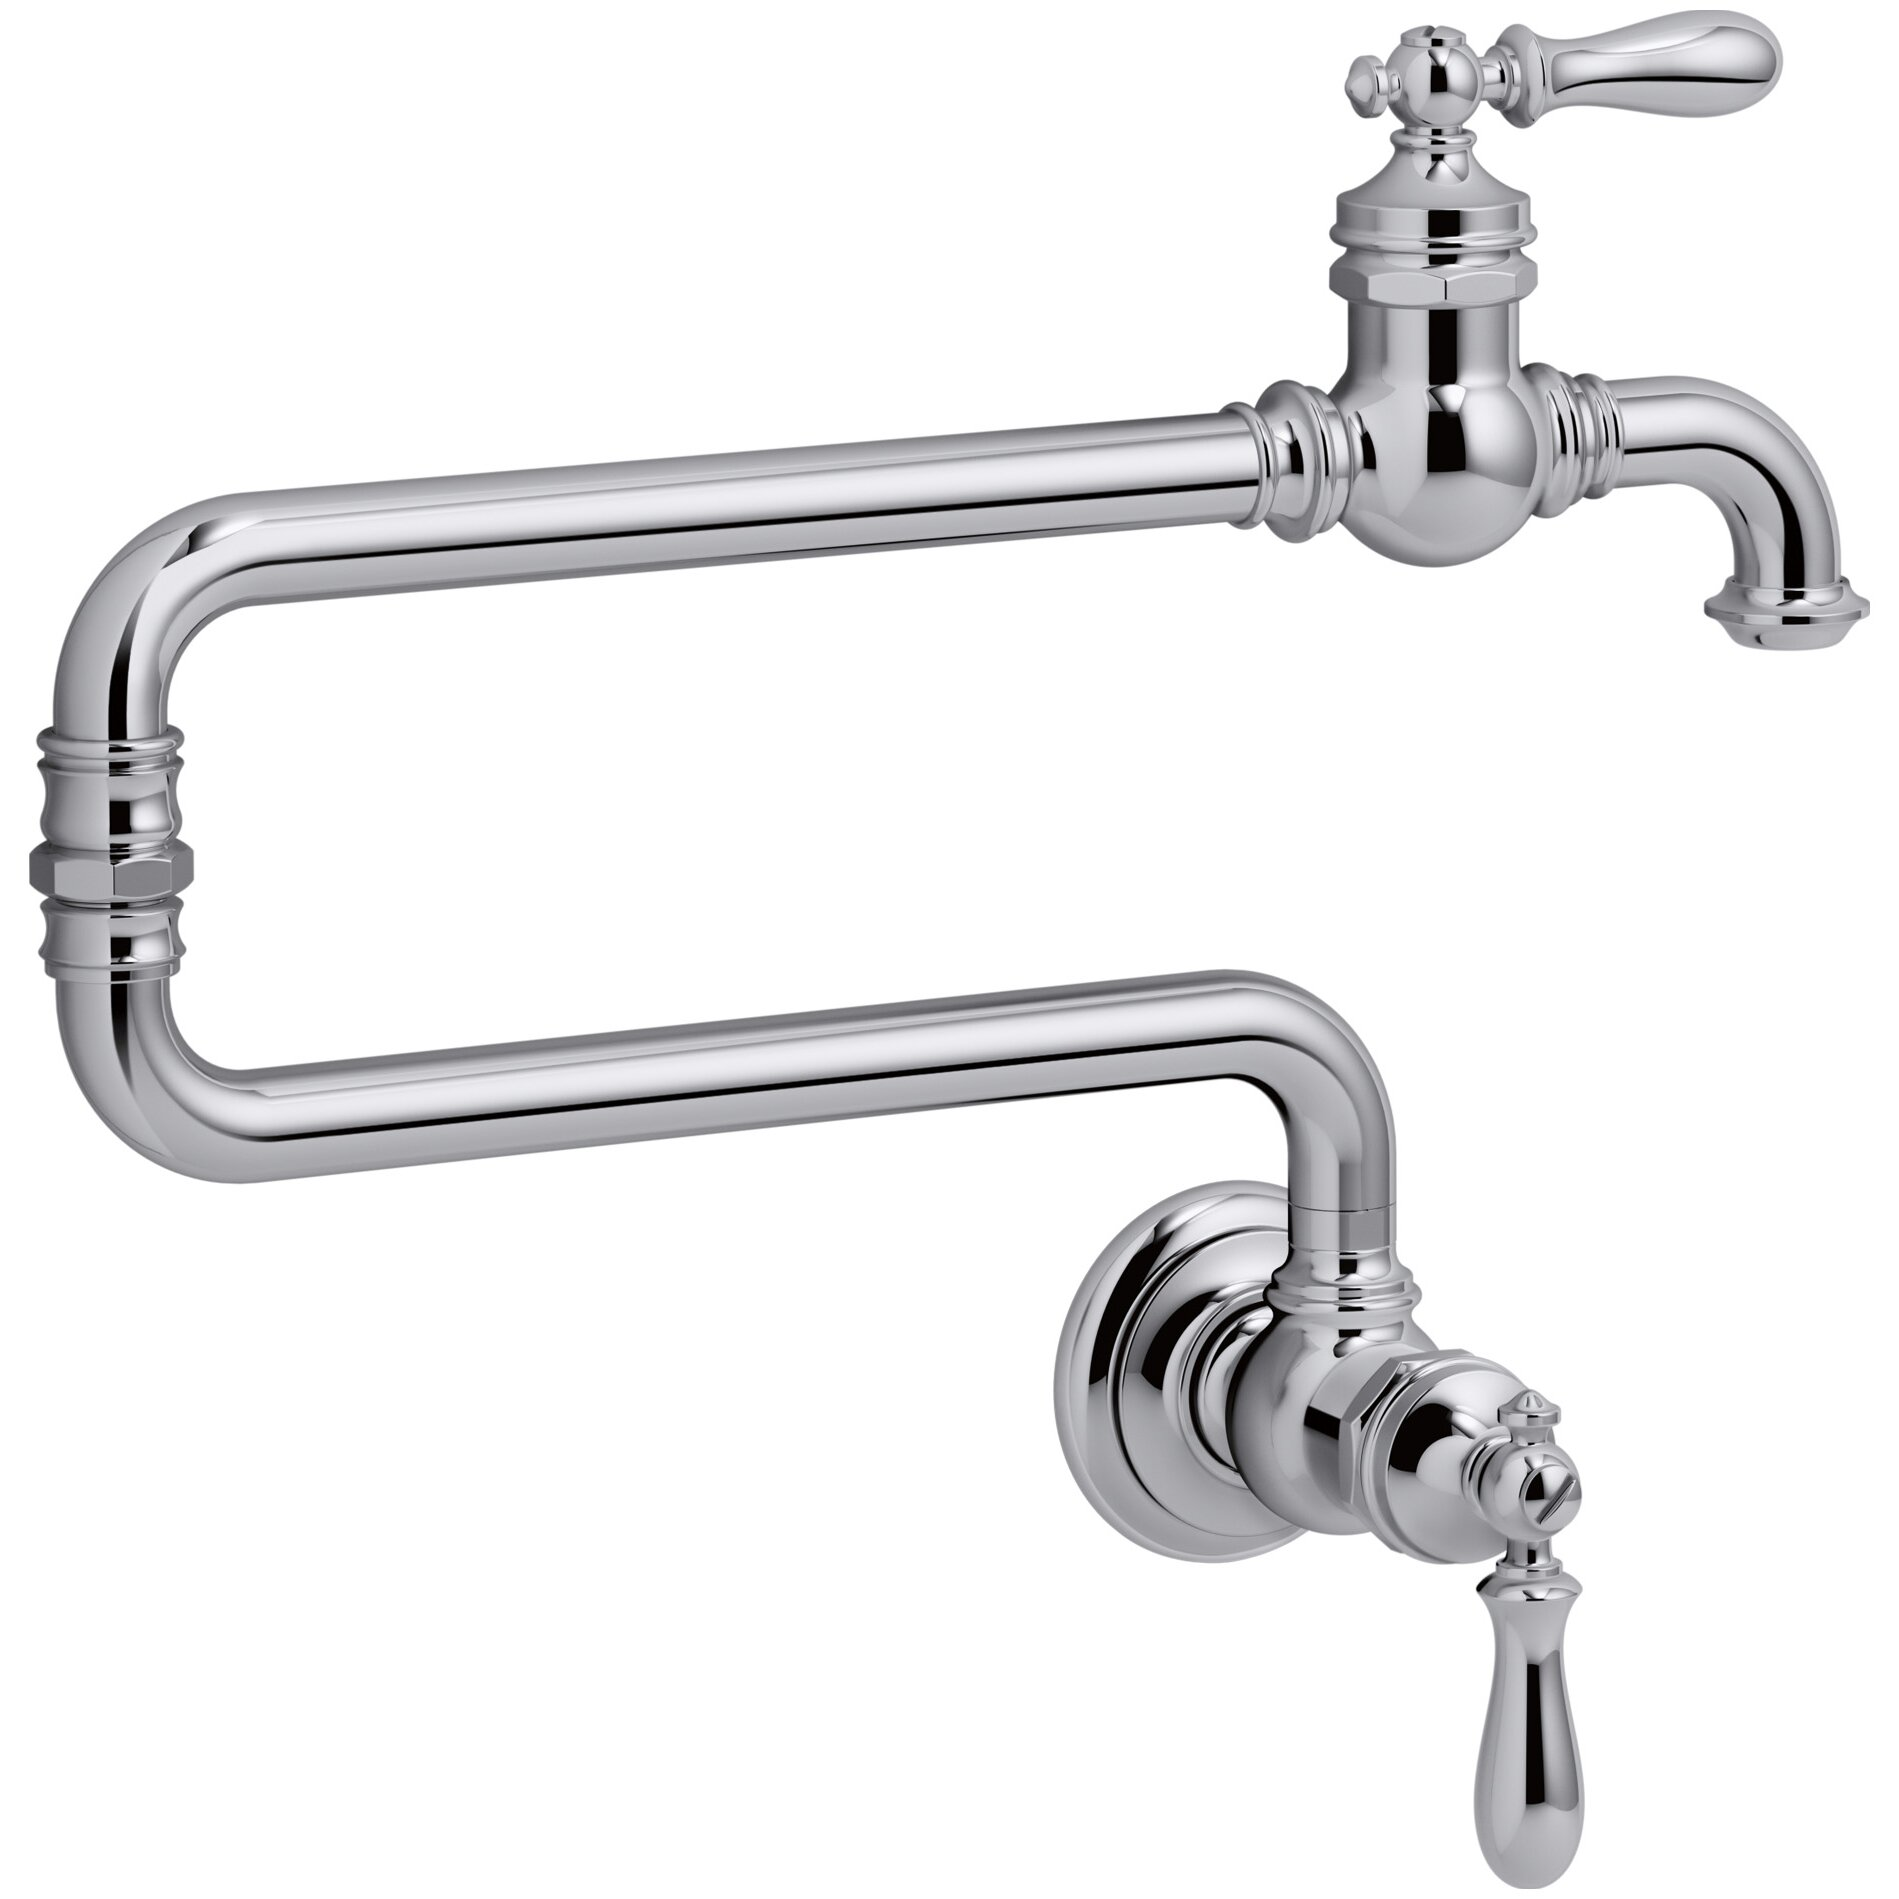 Pot Sink Faucet : ... Hole Wall-Mount Pot Filler Kitchen Sink Faucet with 22